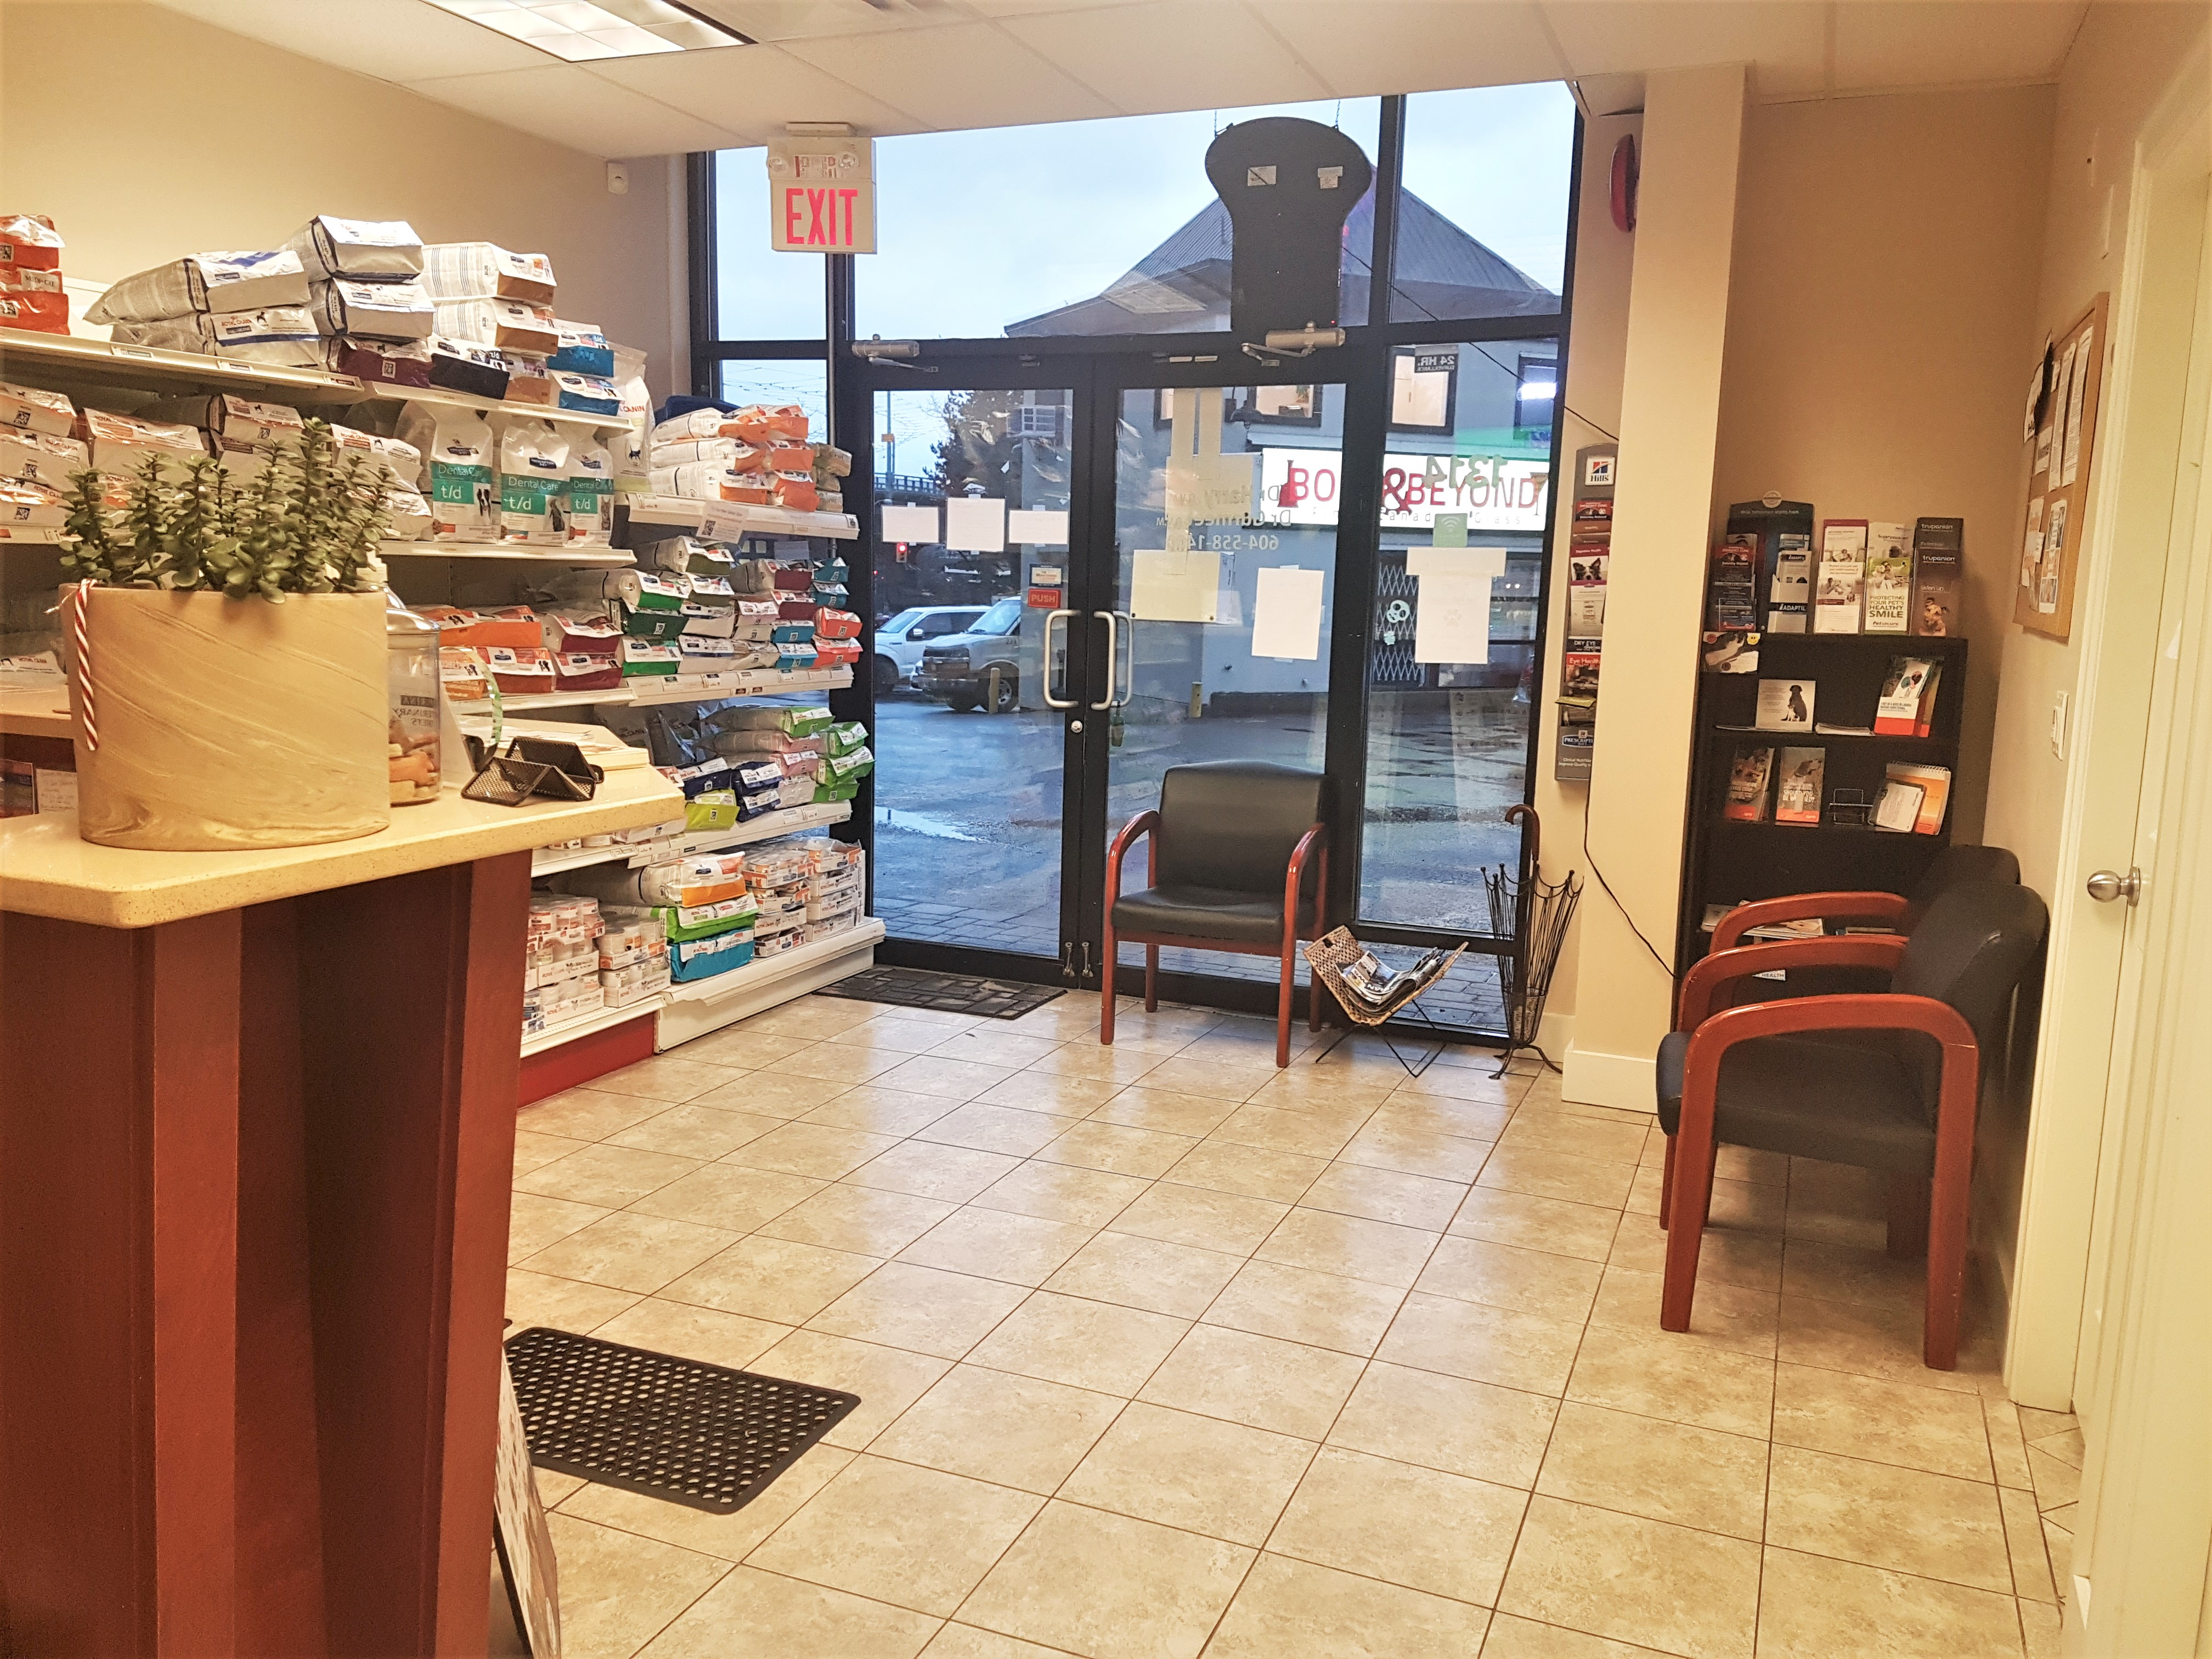 Waiting Area and Medical Prescription Diet